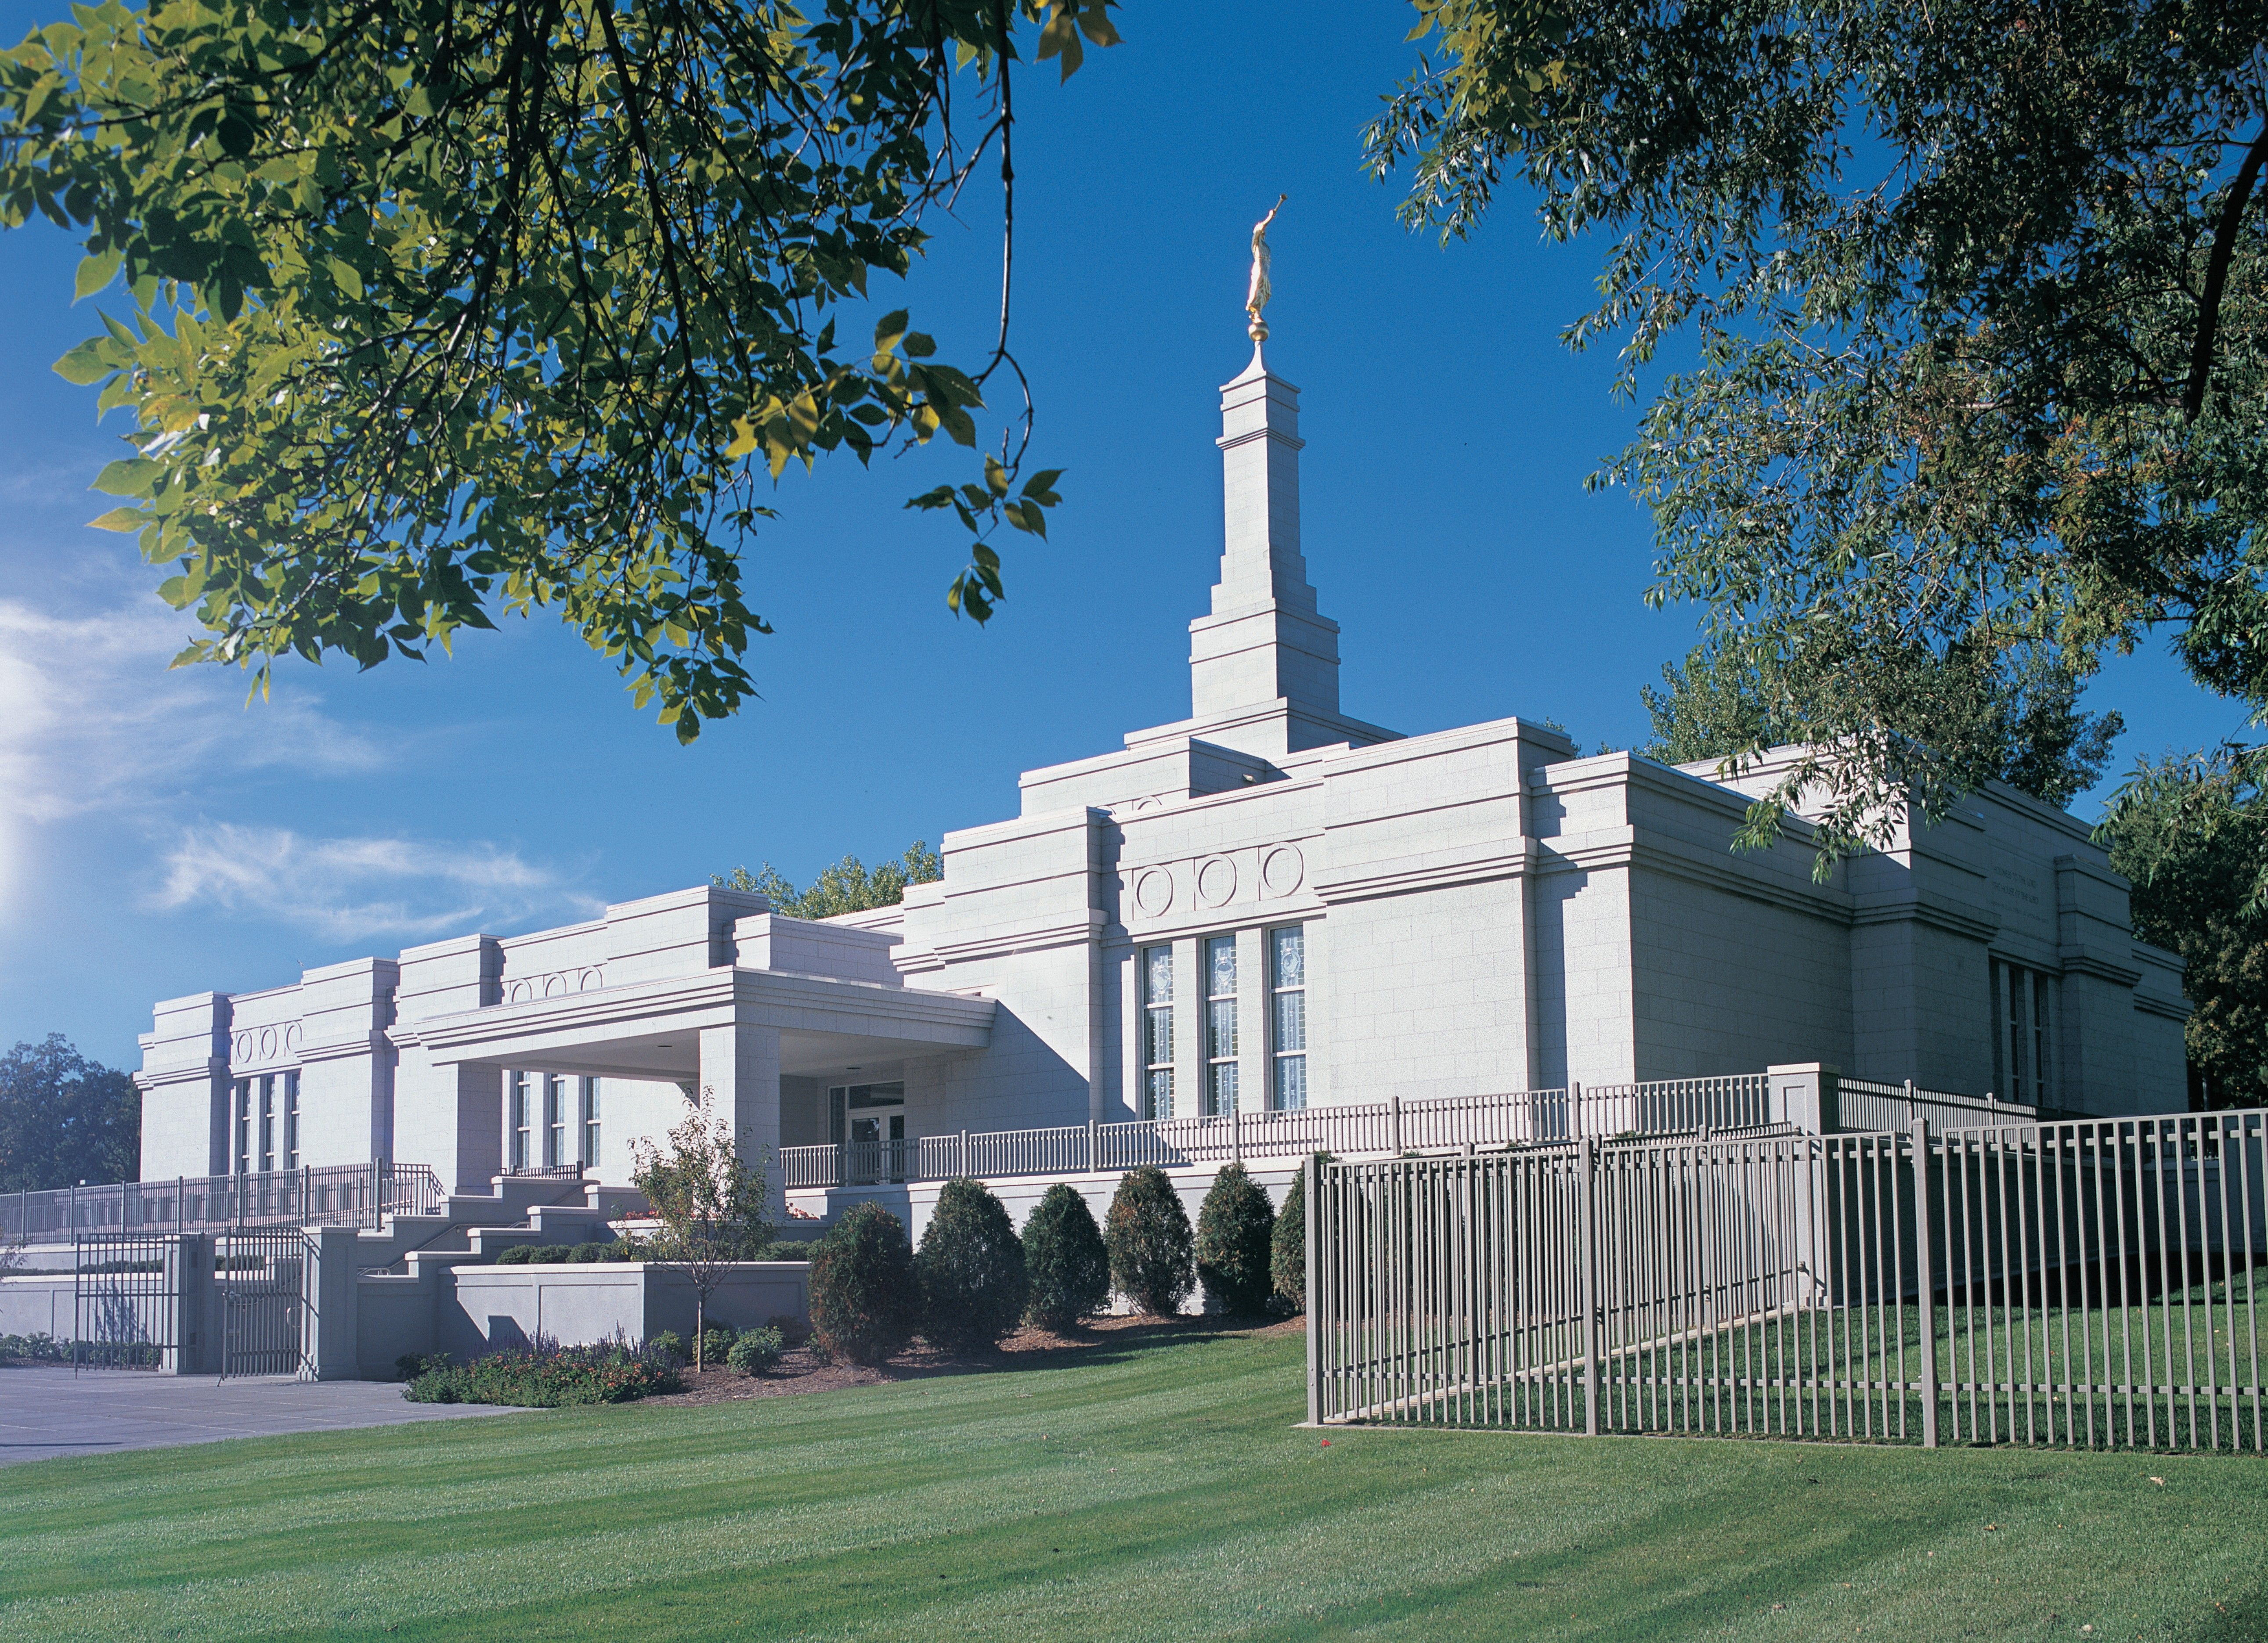 The St. Paul Minnesota Temple and lawn on a sunny day.